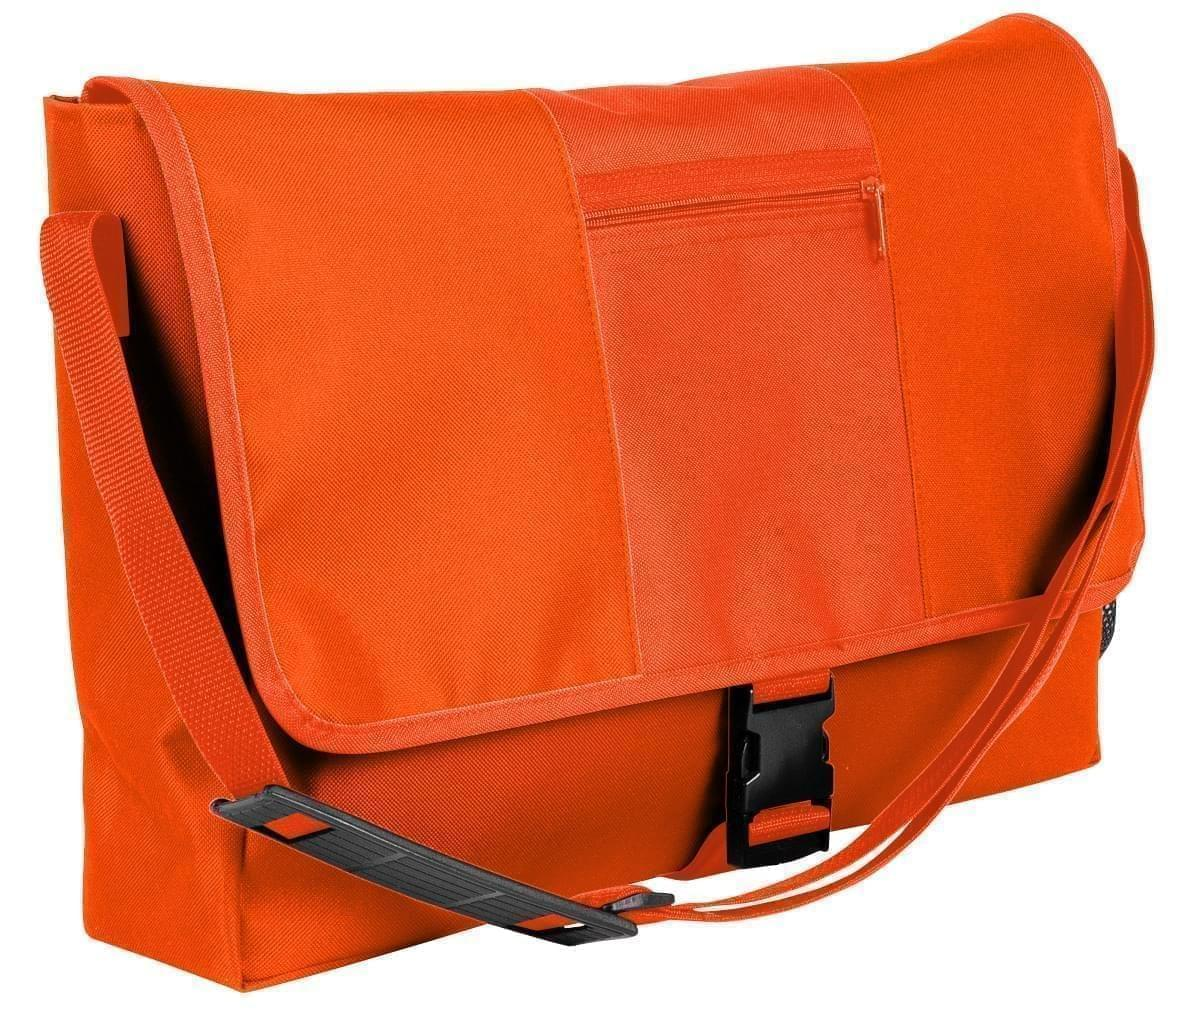 USA Made Nylon Poly Dad Shoulder Bags, Orange-Orange, OHEDA19AXJ